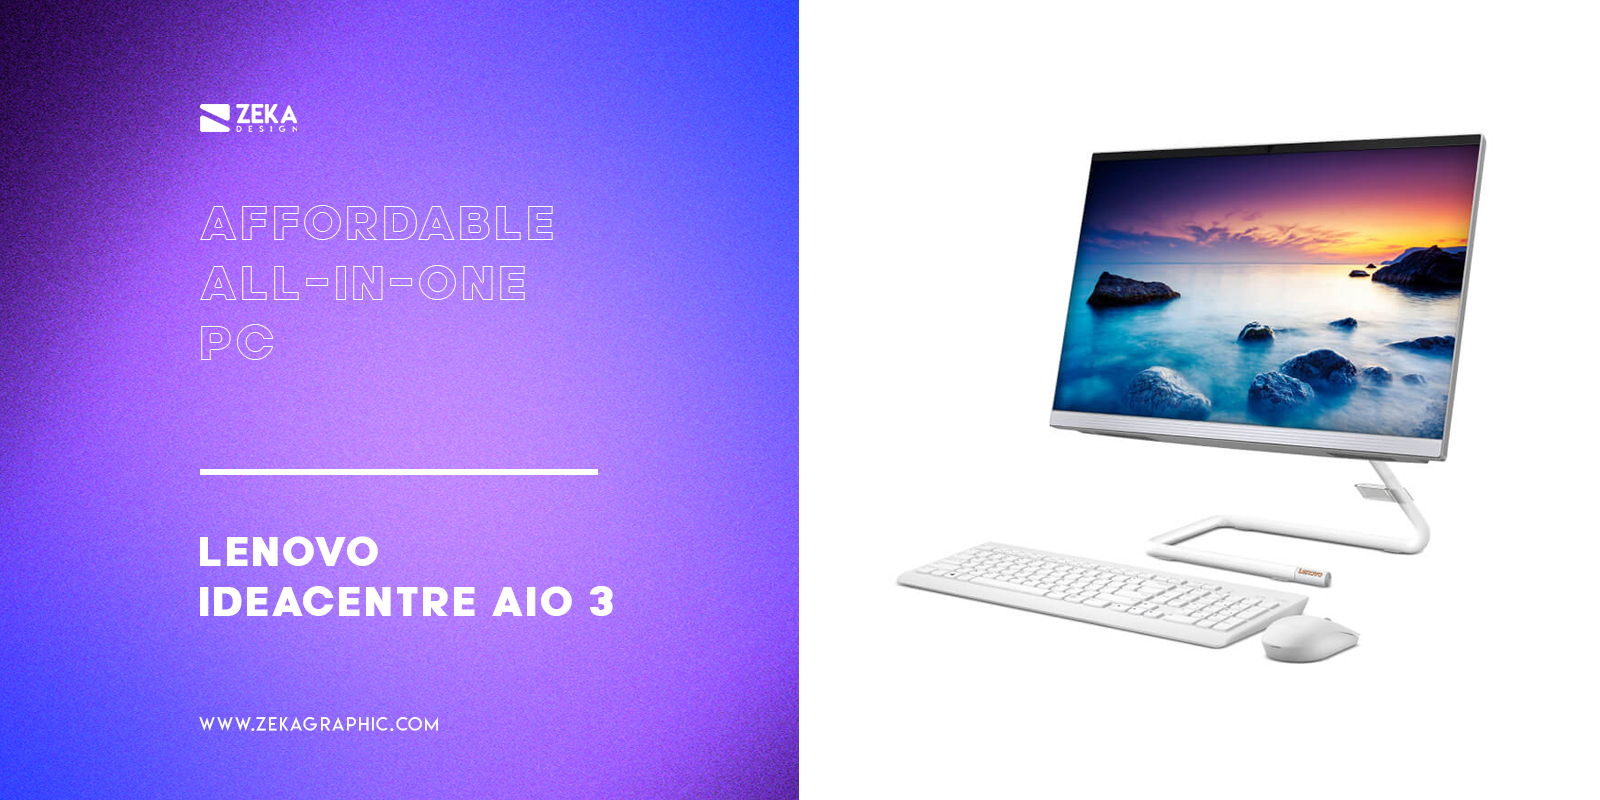 Lenovo IdeaCentre AIO 3 Affordable All-in-one PC